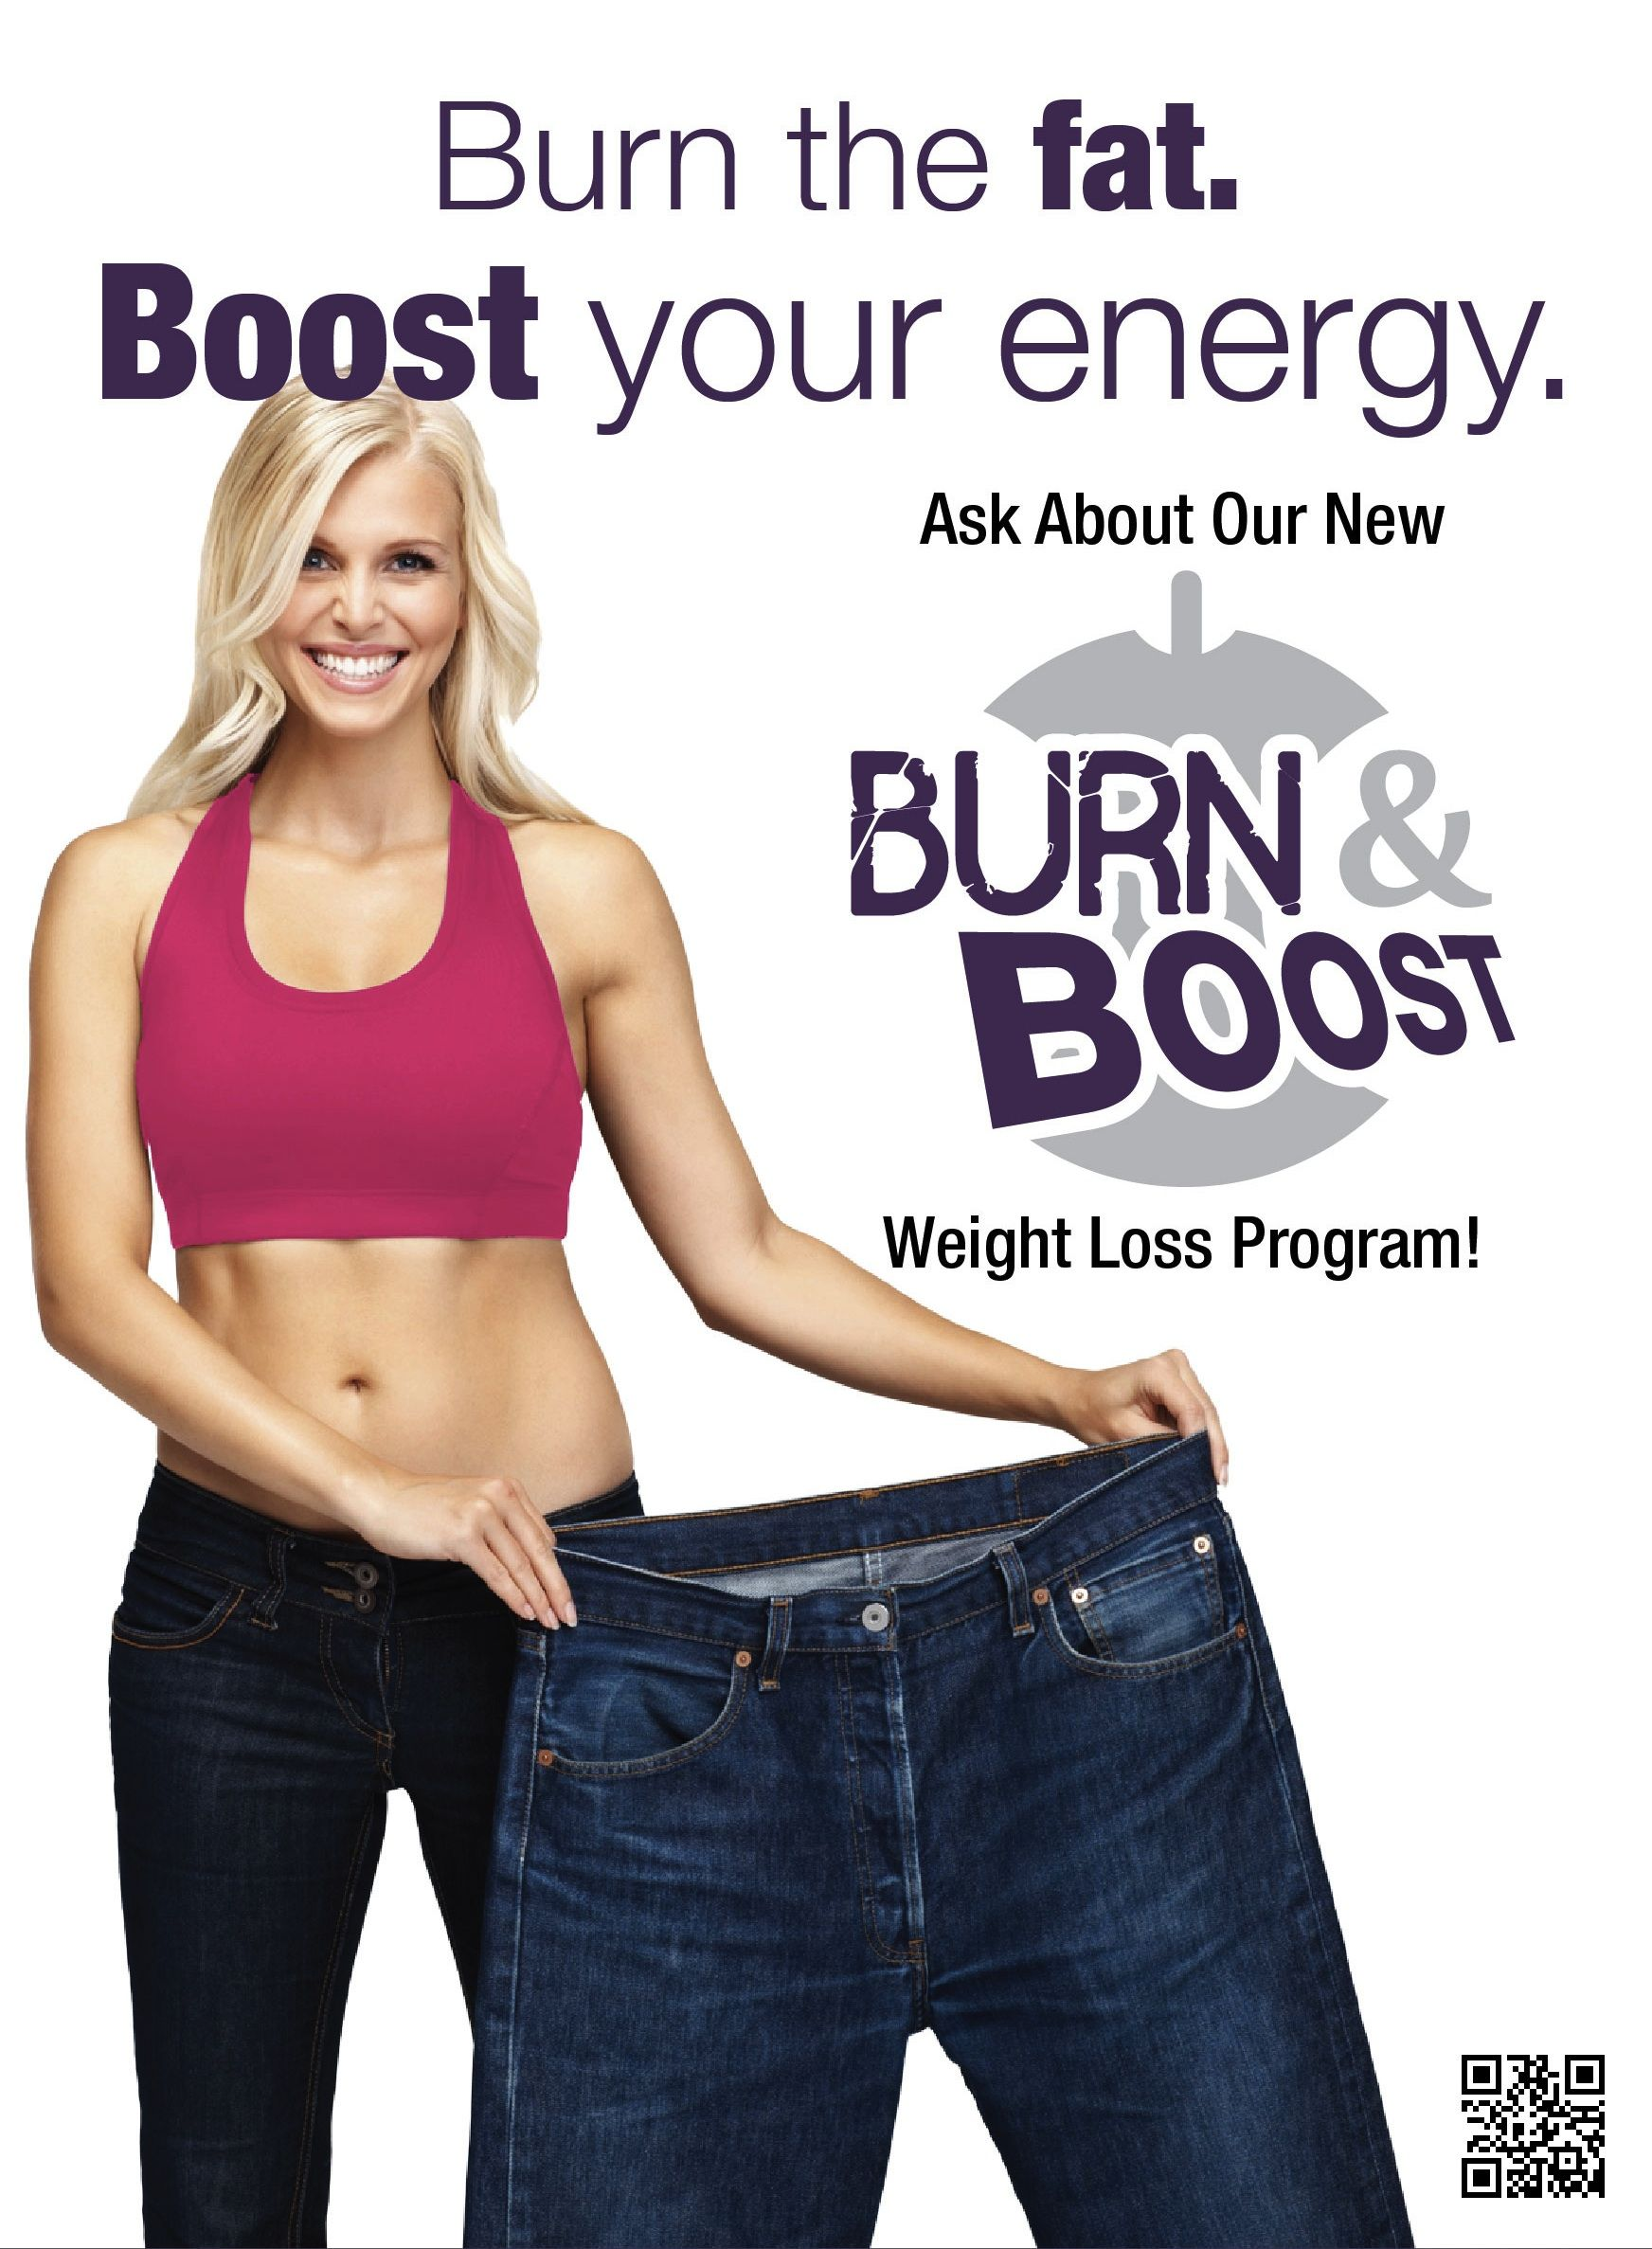 Our Burn and Boost Program gives you the best of both world's - it burns your fat and boosts your energy! www.facebook.com/InShapeMDMarietta